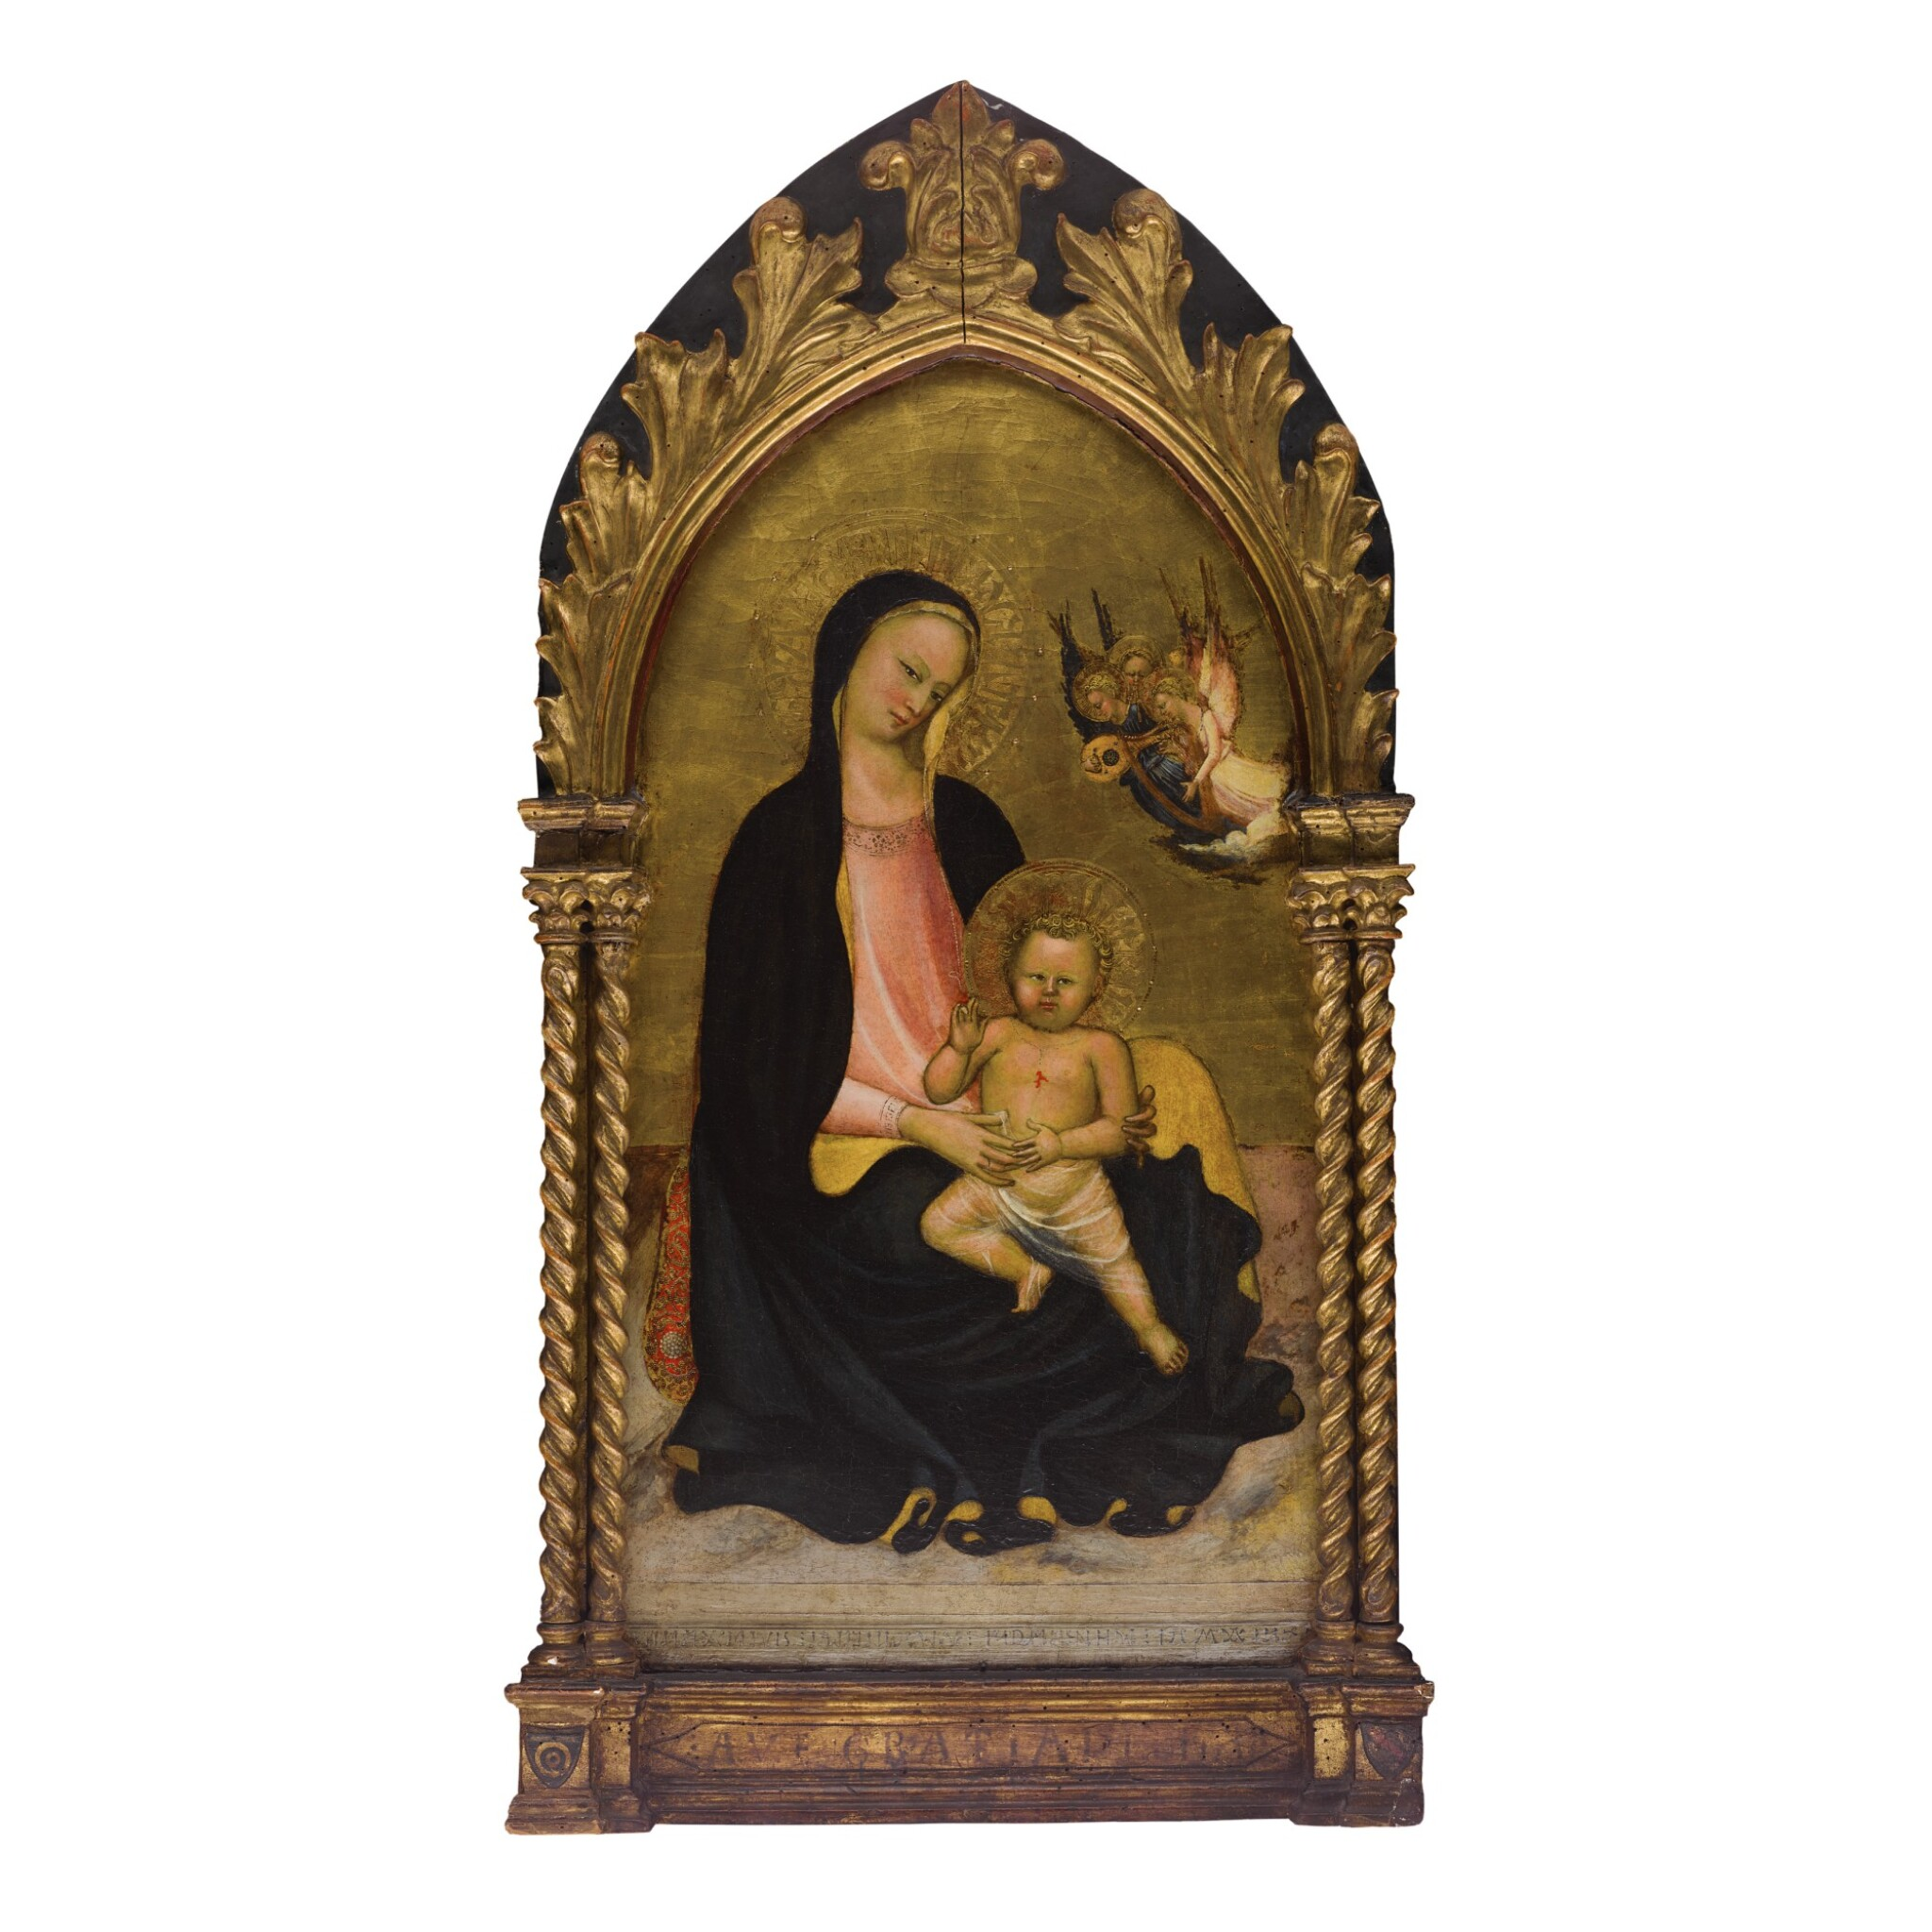 Madonna and Child with musician angels